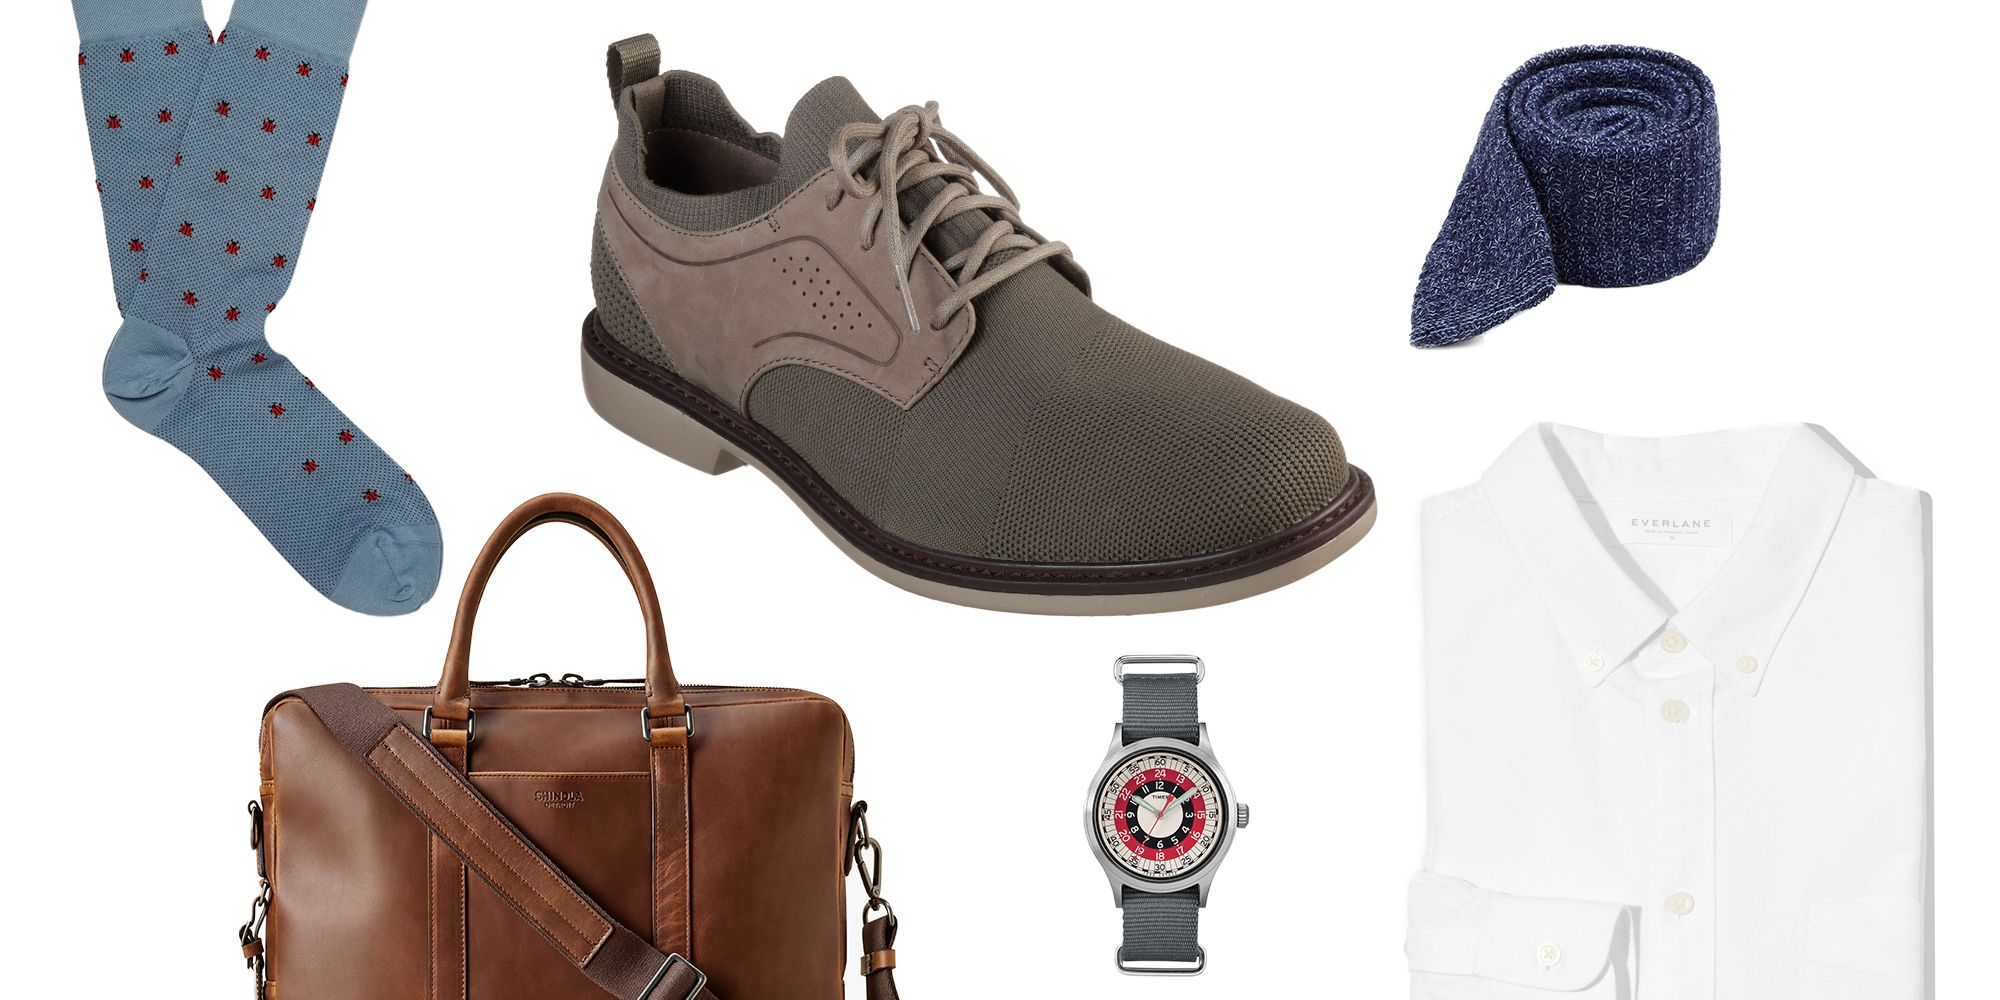 Give Your Standard Oxfords a Break and Wear These to Work Instead